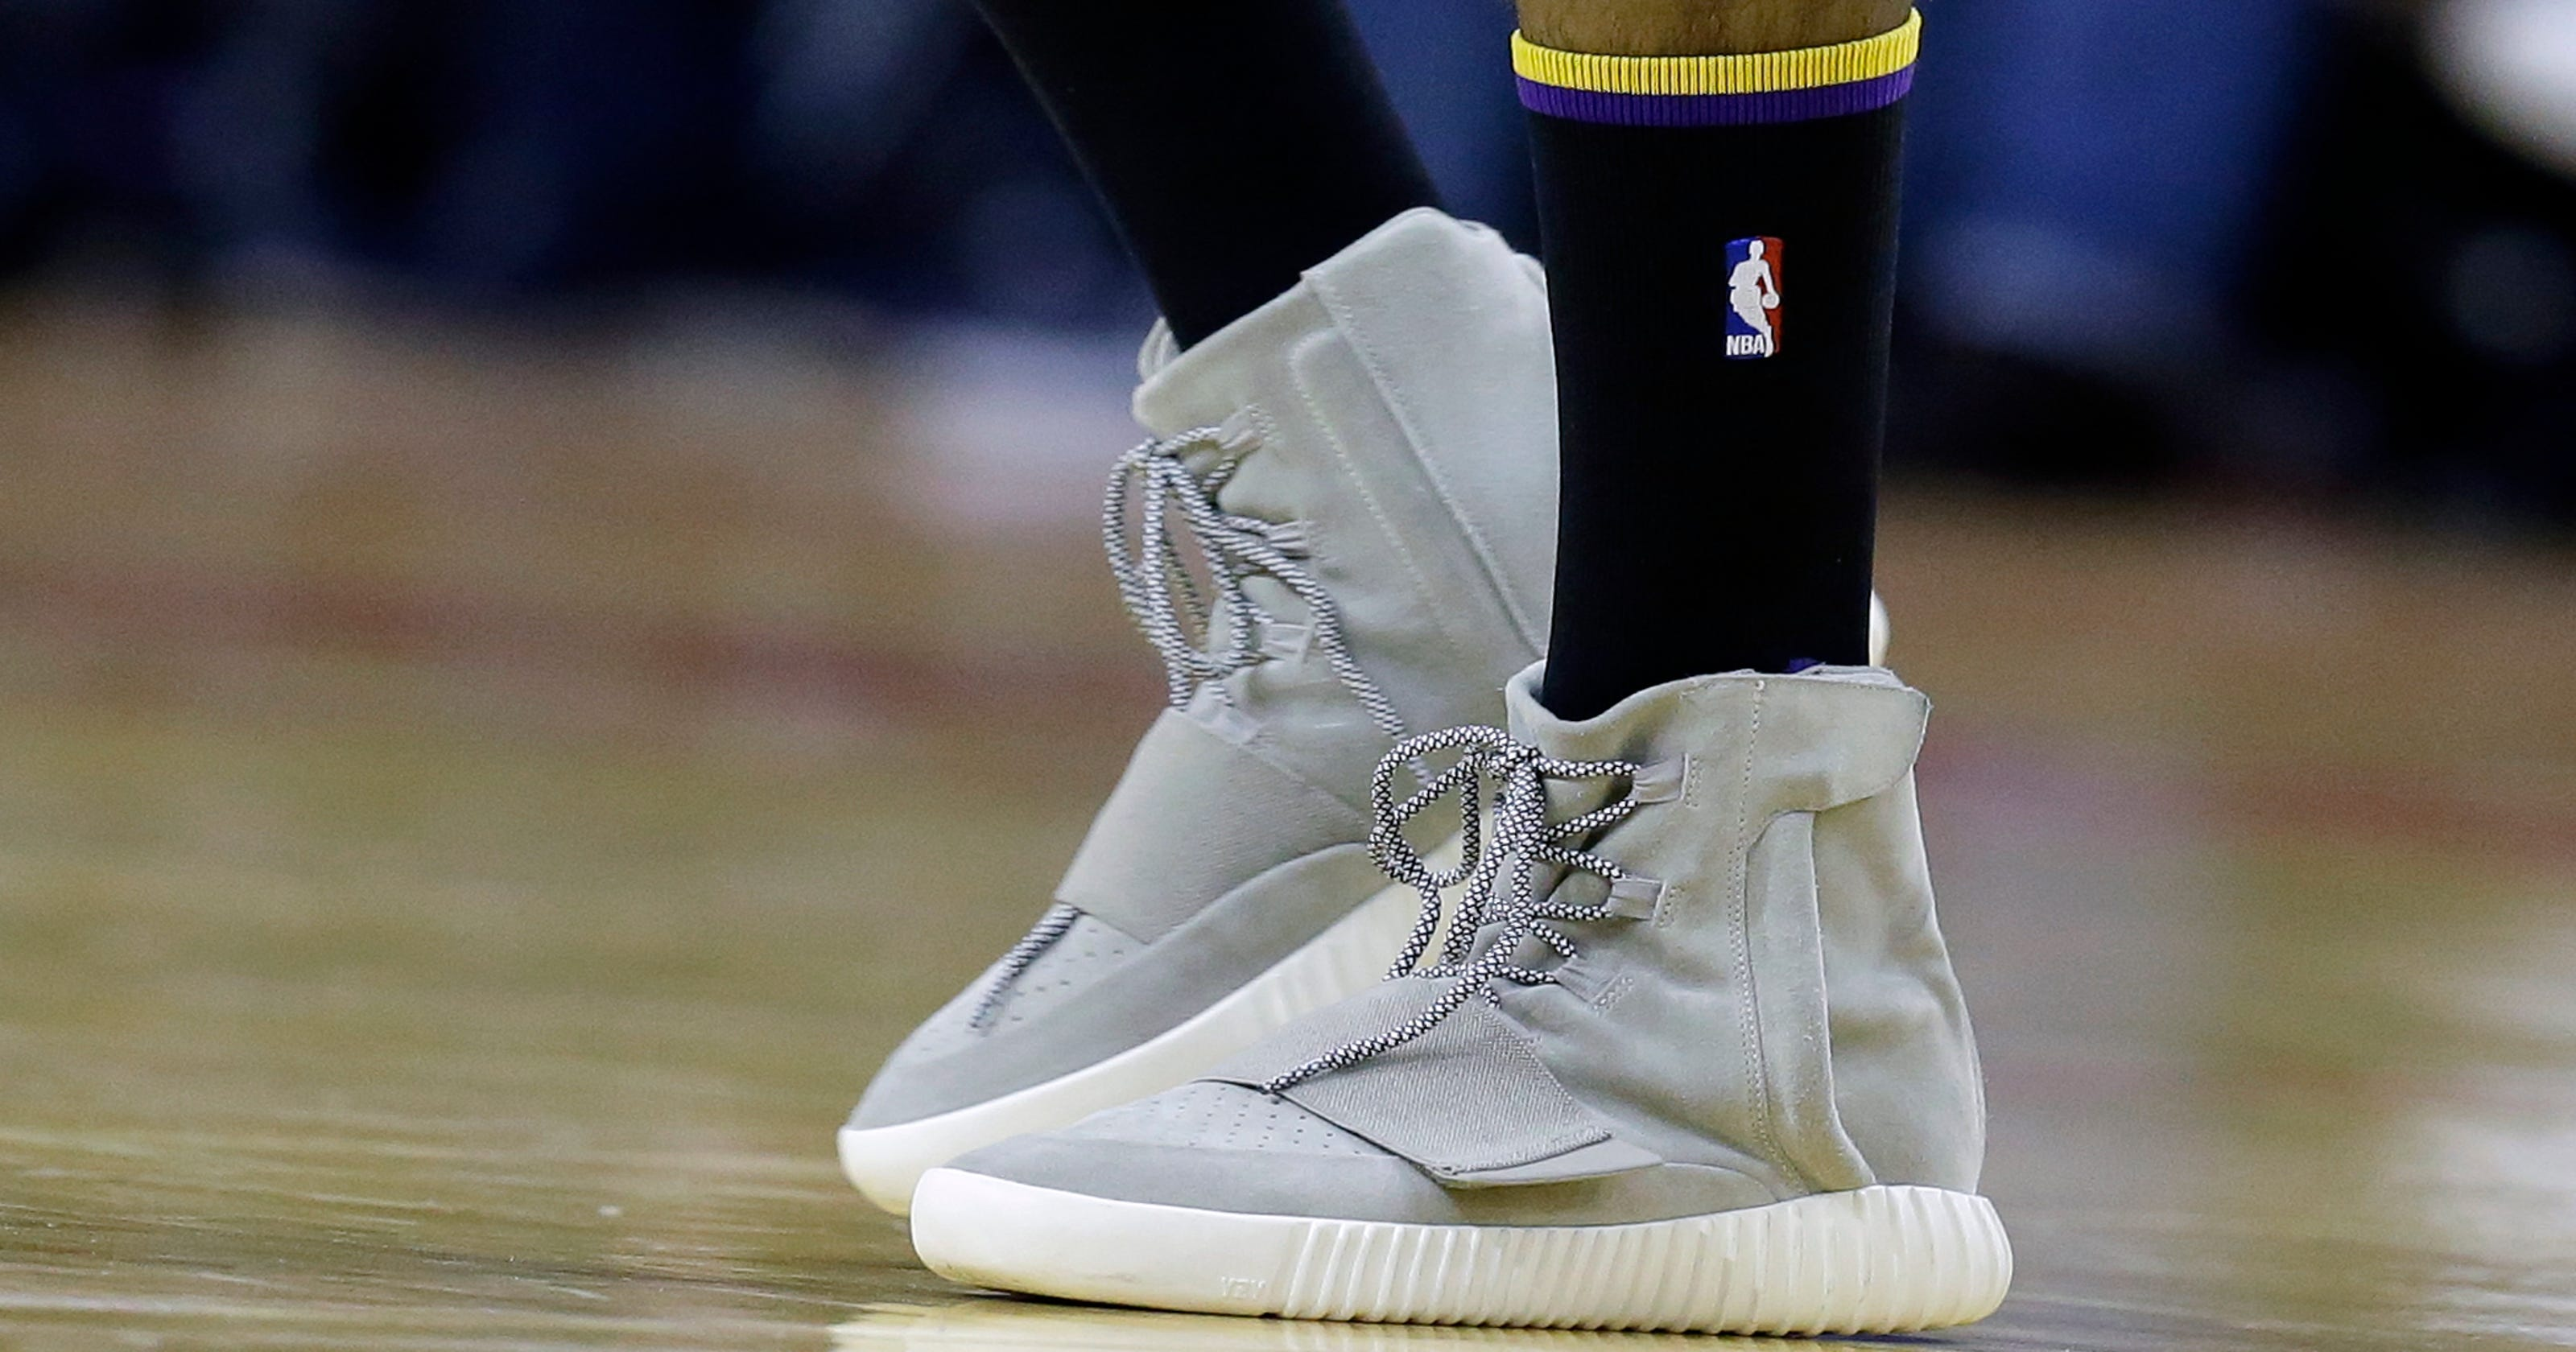 5bd497c7816e Swaggy P wears Kanye s lifestyle Yeezy shoes in game